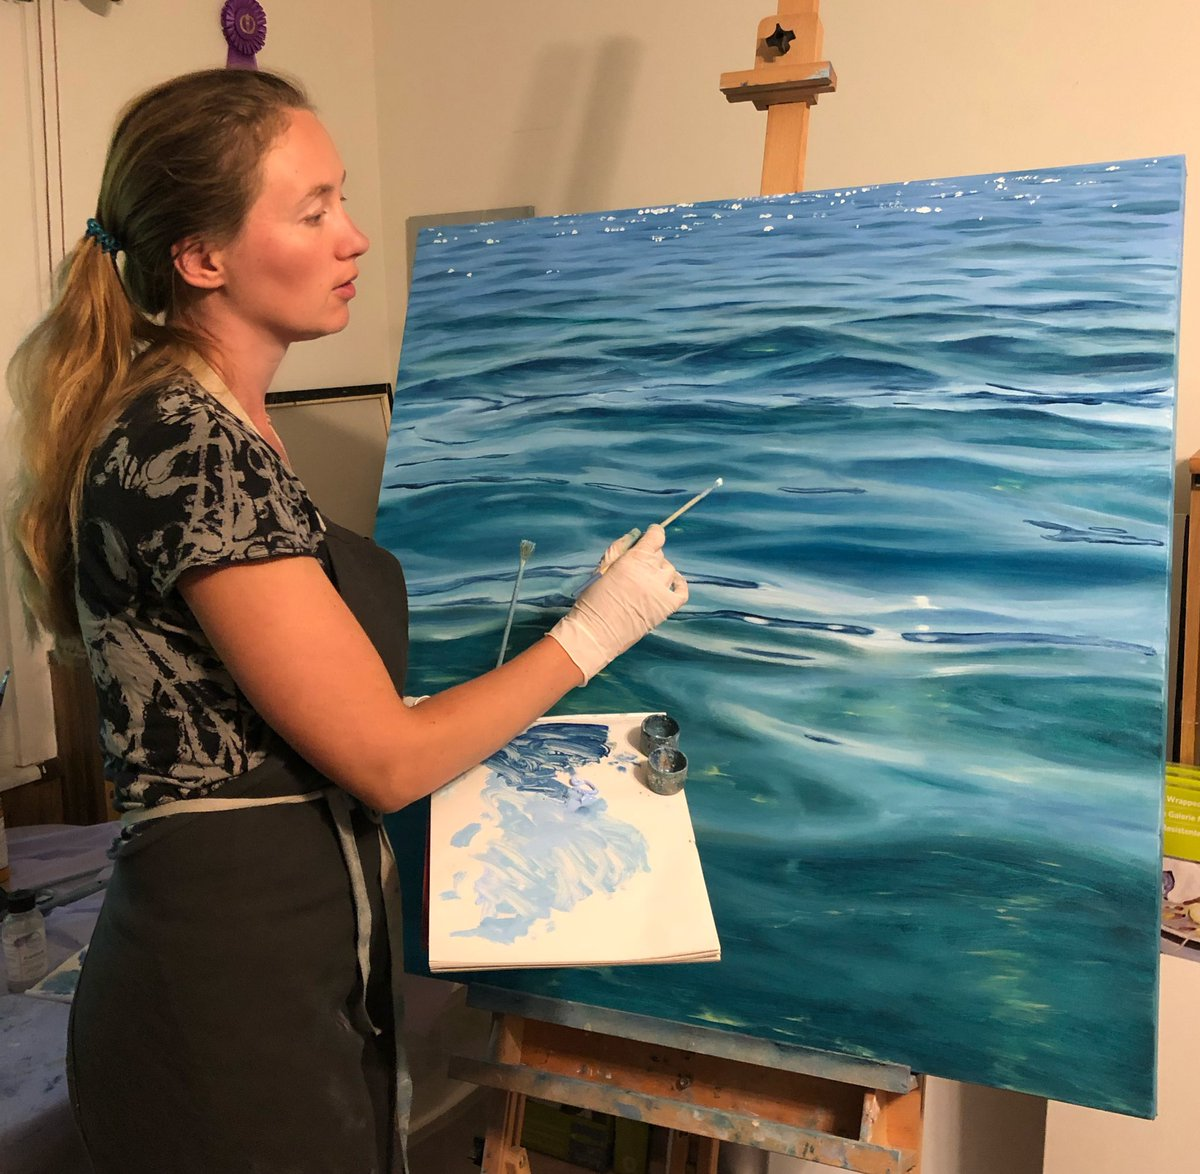 Almost done, layering on the light in this large crystal clear water painting. #SundayMorning #ArtistOnTwitter<br>http://pic.twitter.com/CYd6Ym9czL